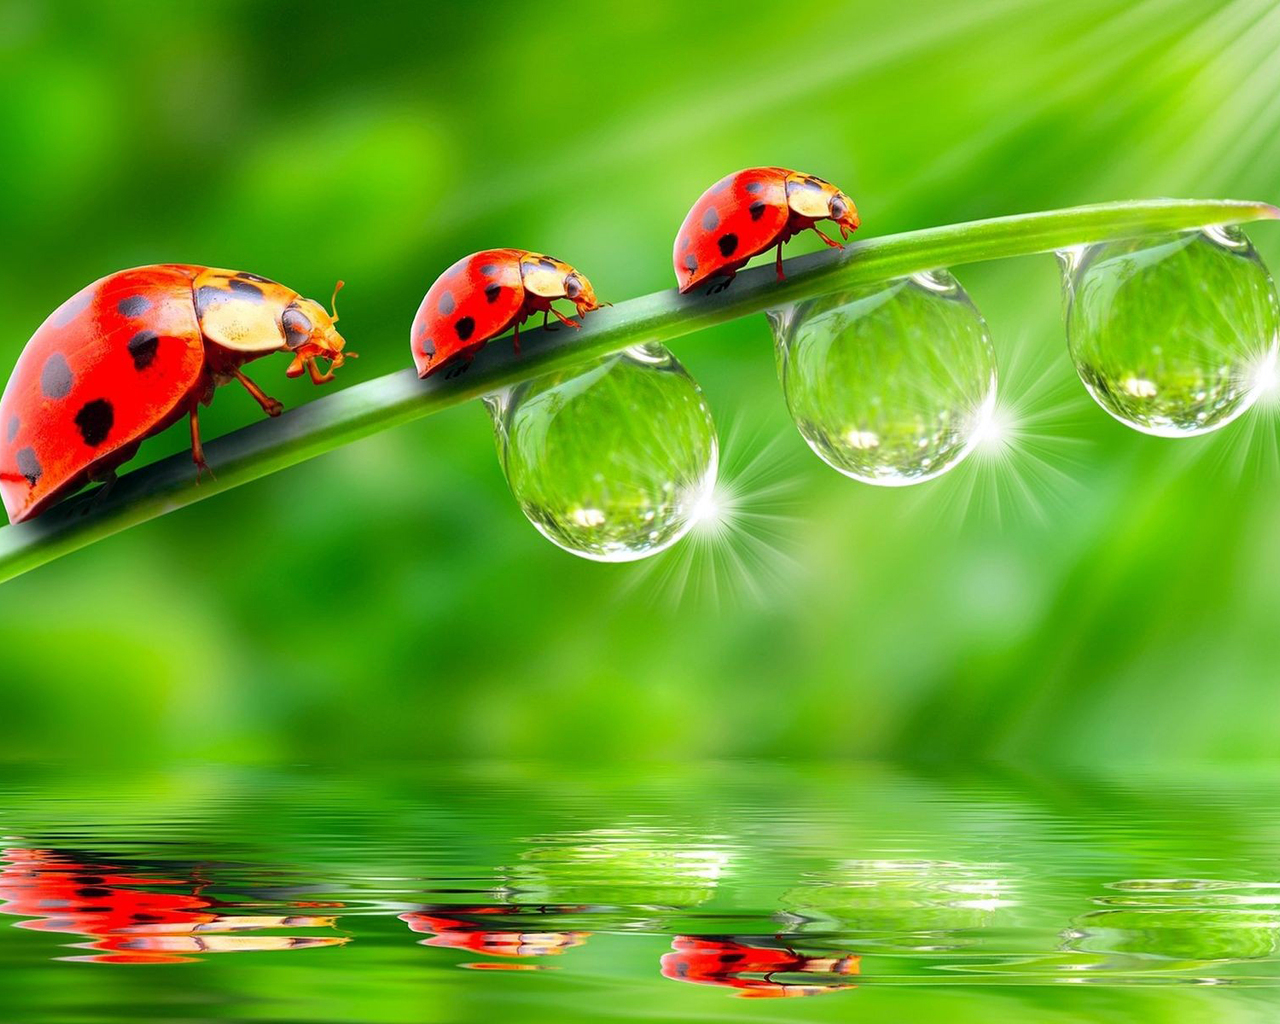 Ladybugs and Dew Drops